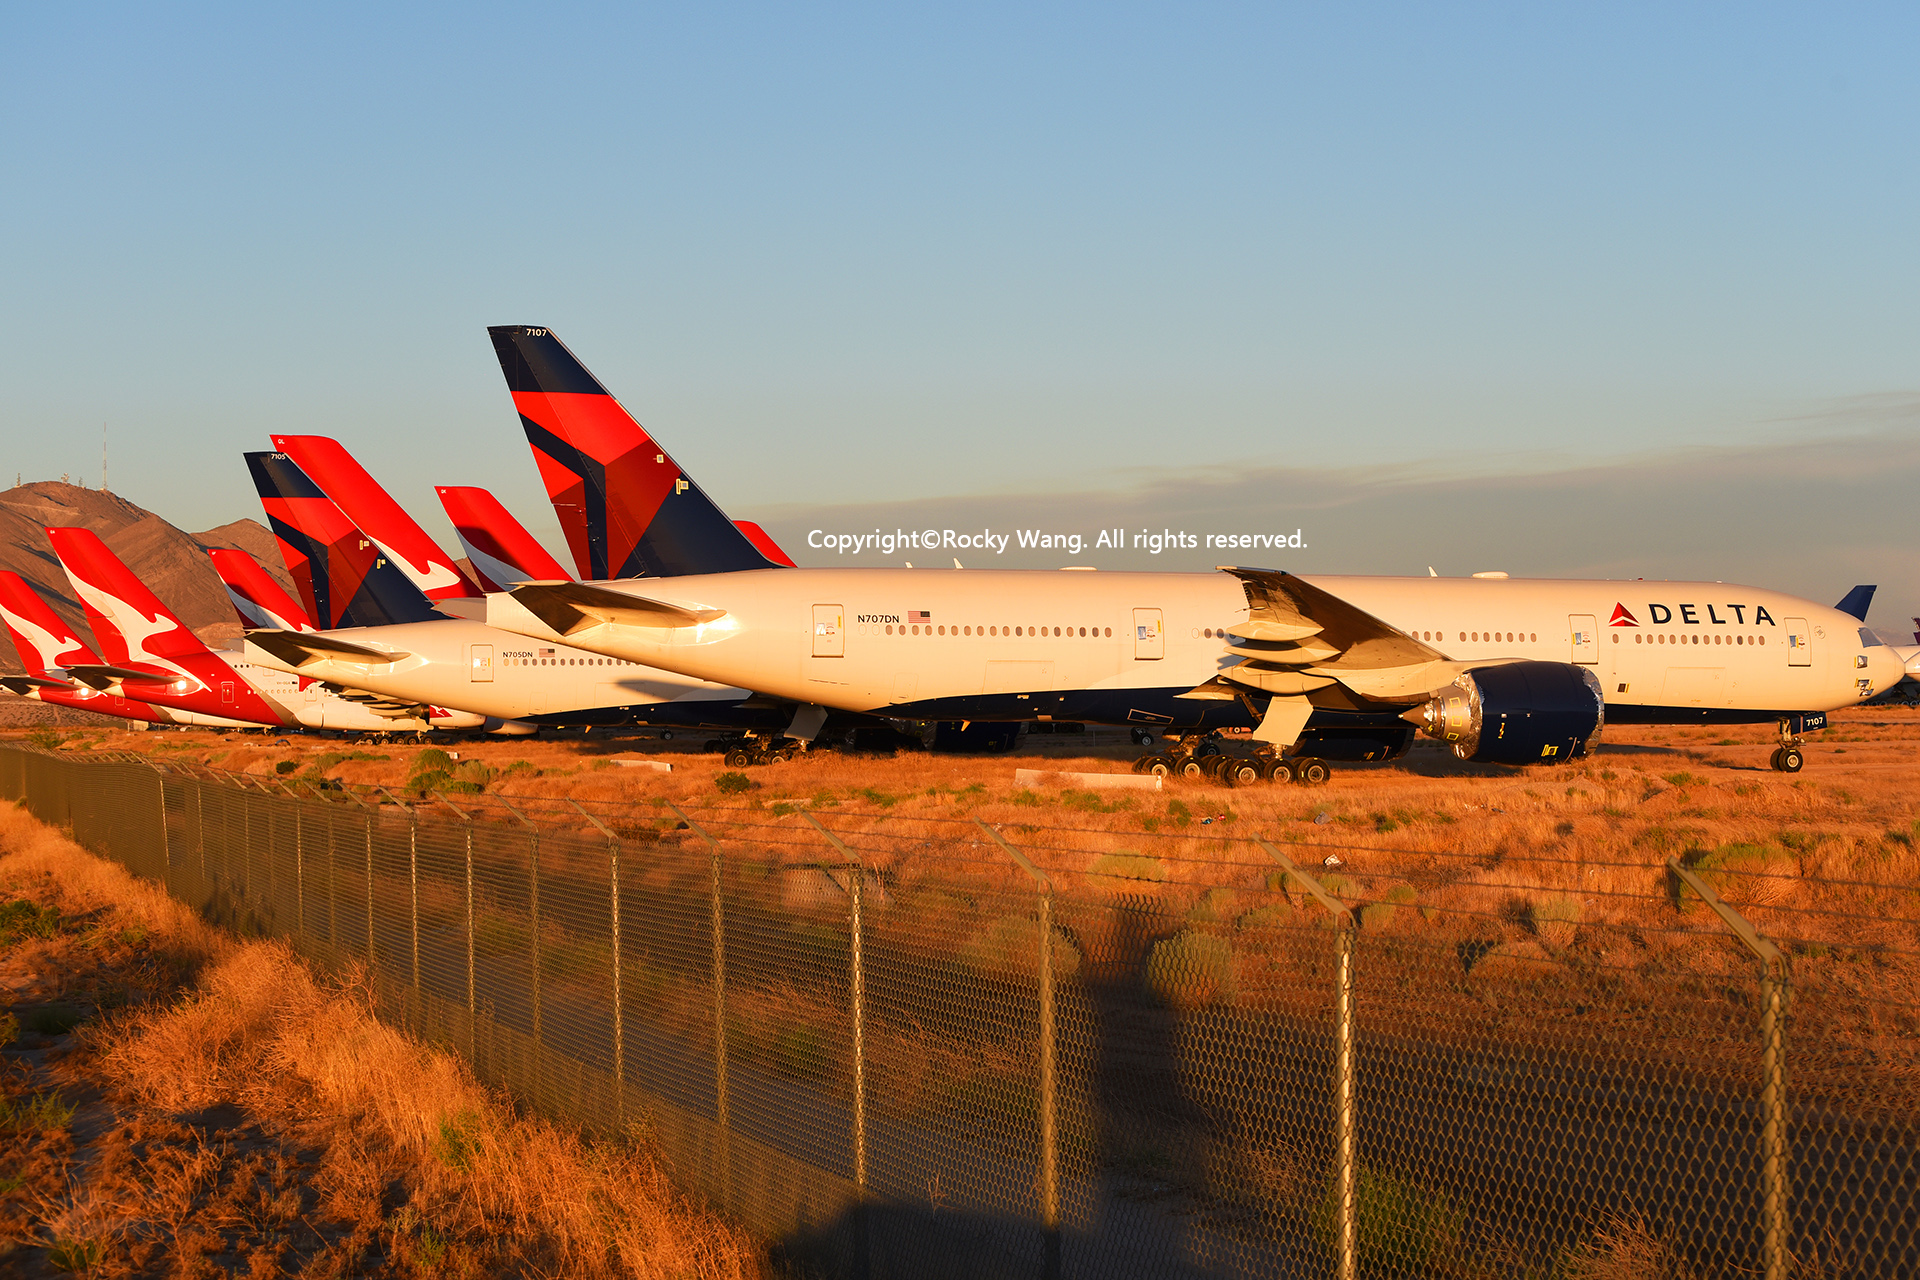 Re:[原创]沙漠29图+彩蛋 BOEING 777-232LR N707DN Victorville-Southern California Logistic